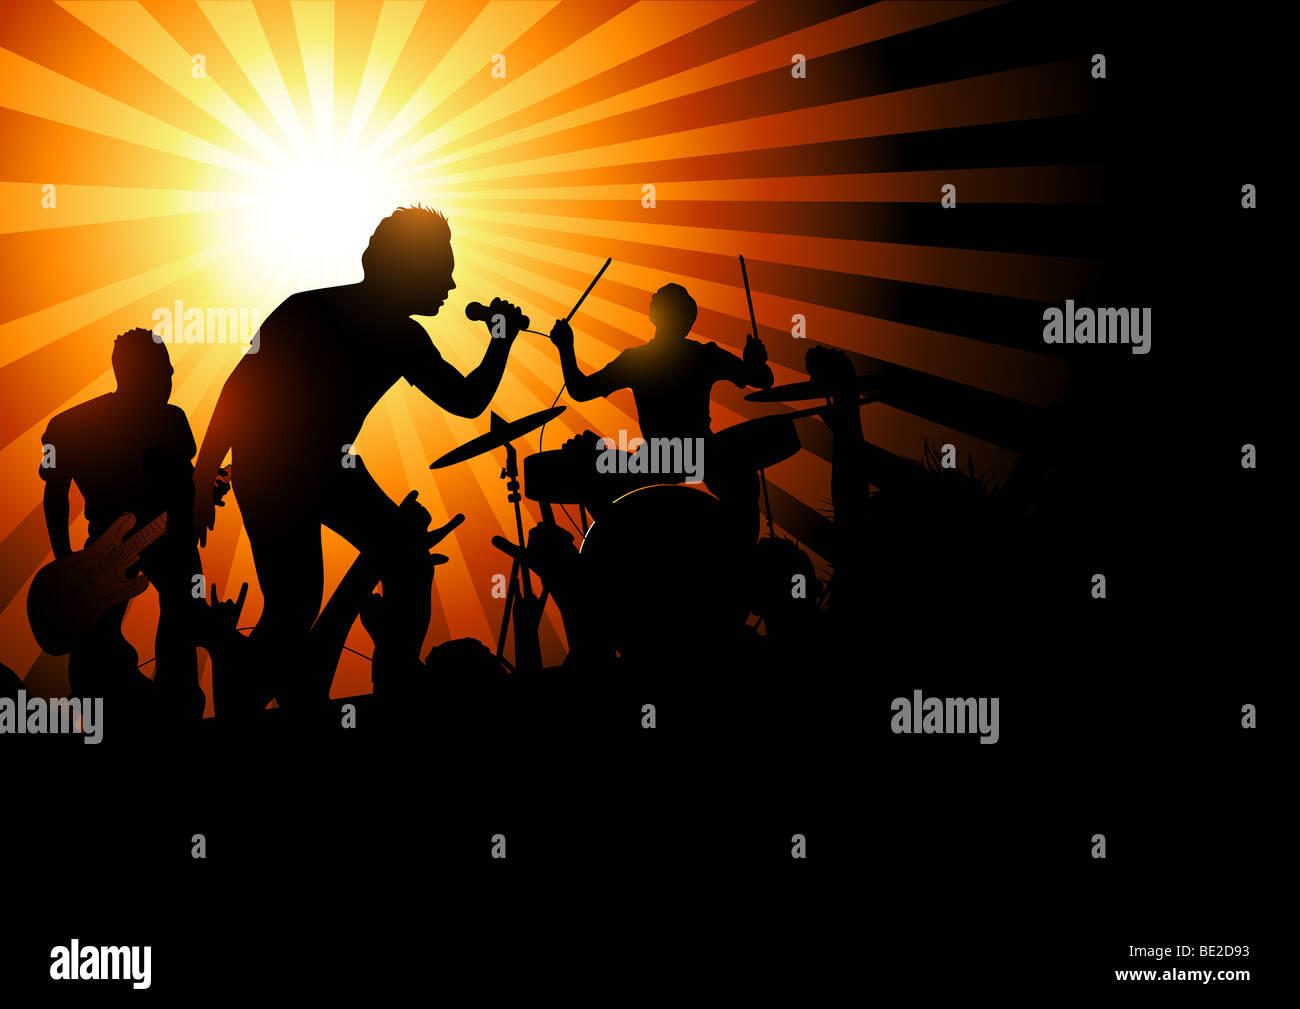 A band playing to a crowd of fans...vector illustration. - Stock Image